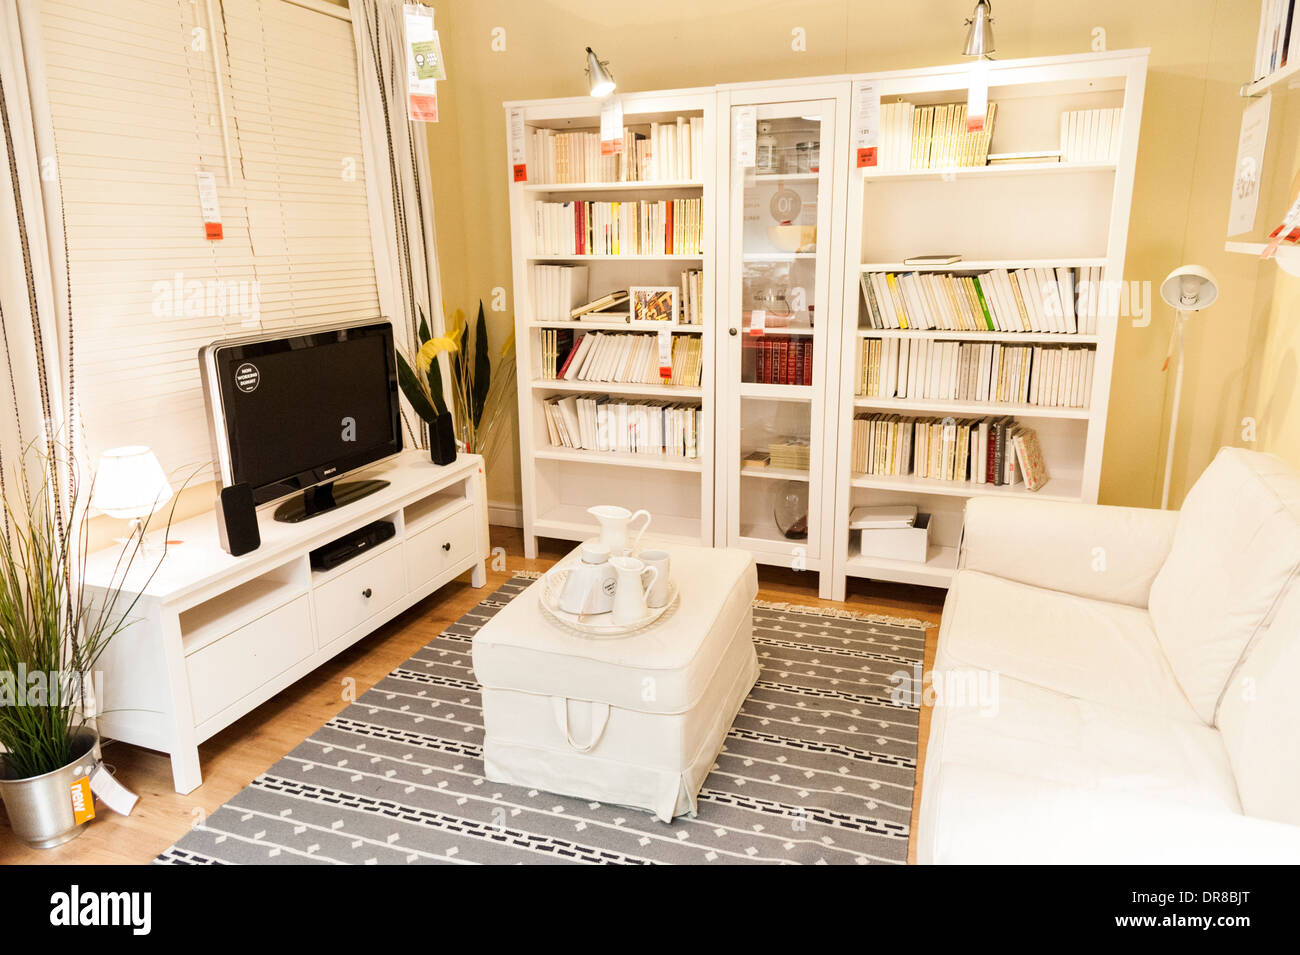 Wohnzimmer Mobel In Ikea London England Uk Stockfoto Bild